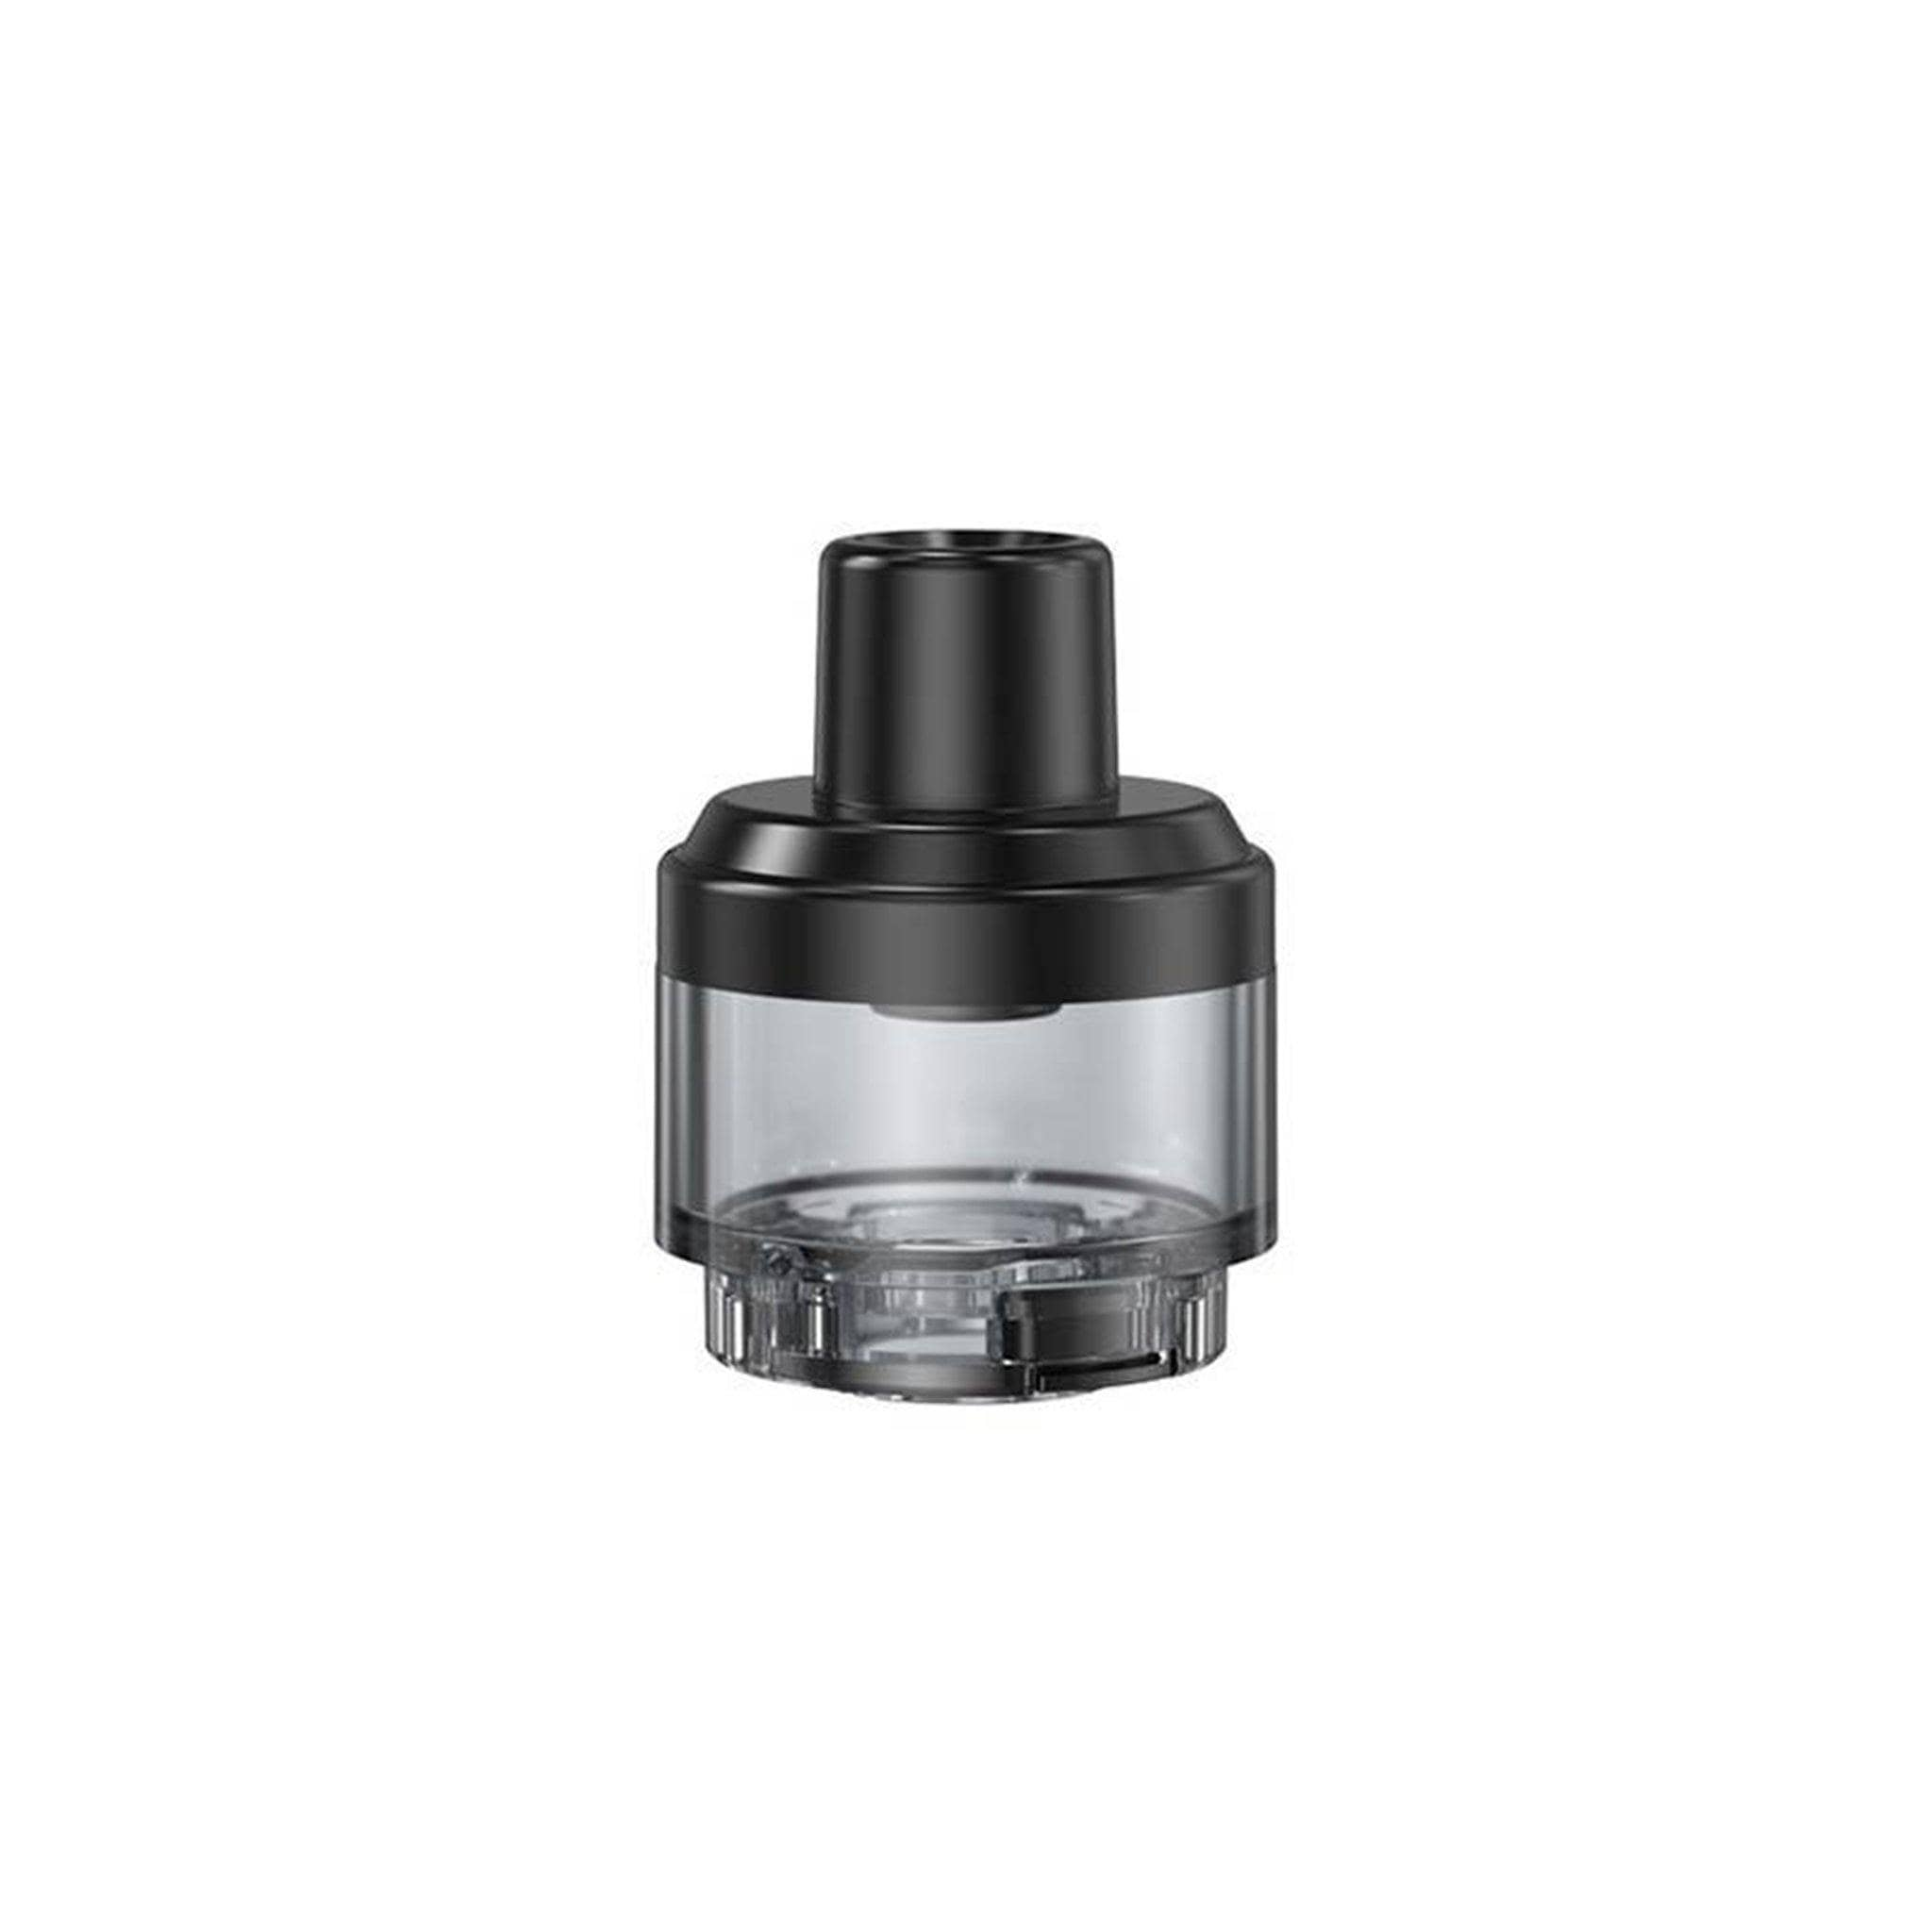 ASPIRE BP80 EMPTY POD 2ml (BC COMPLIANT) - Boss Vapes